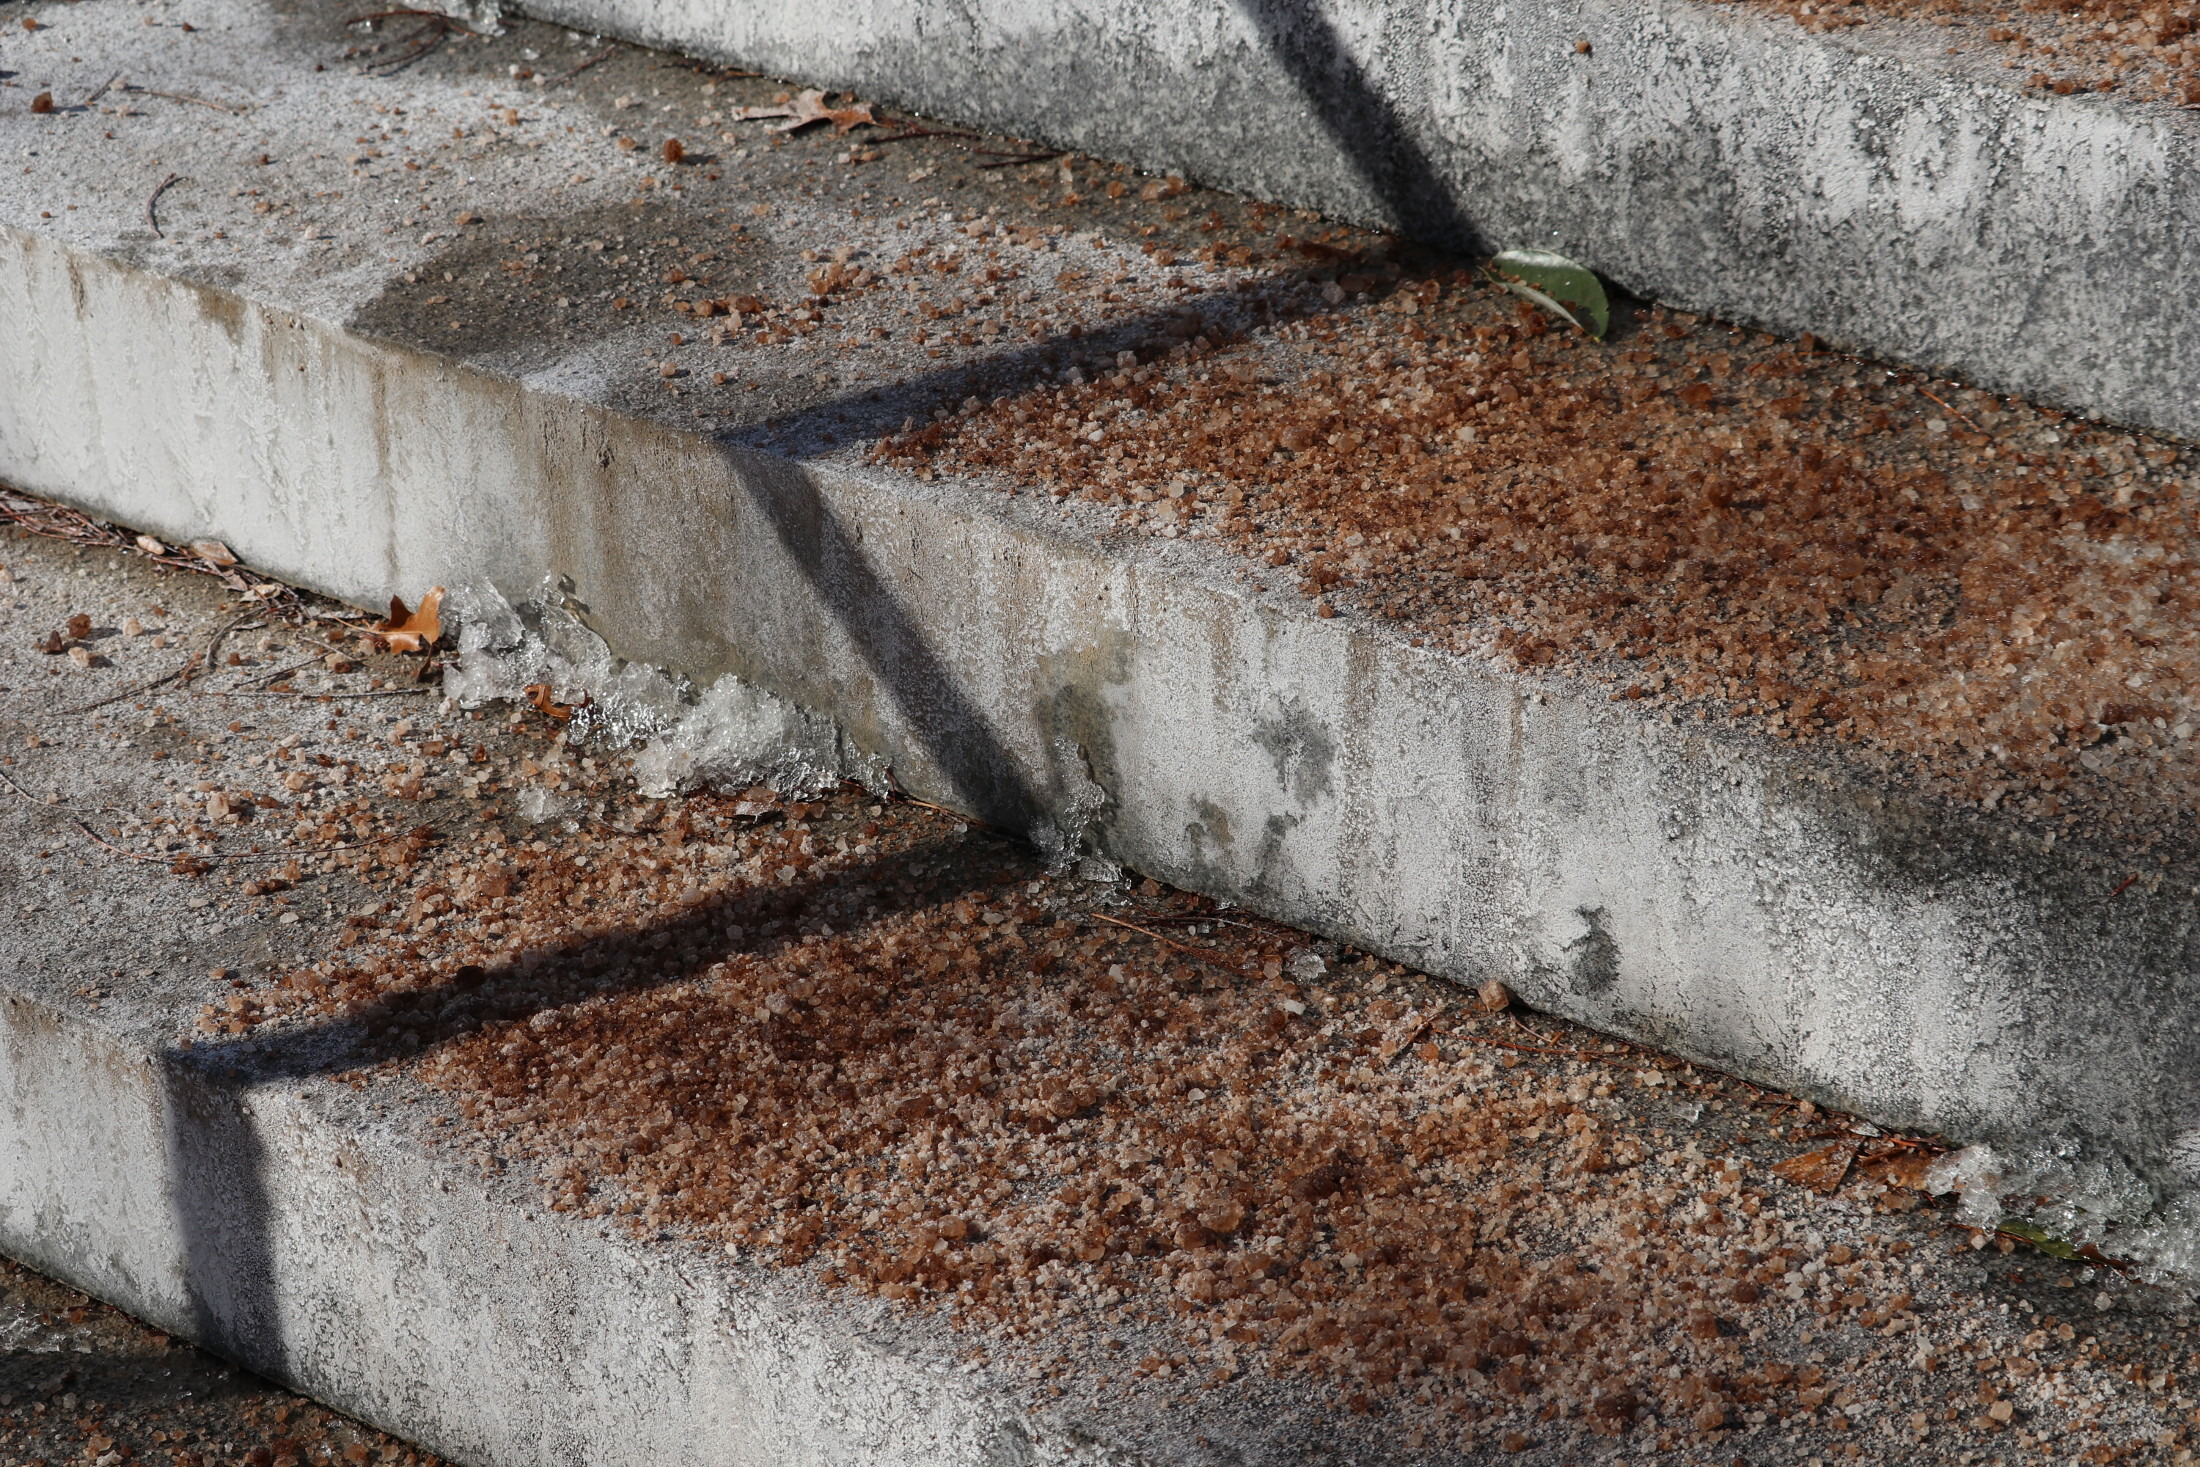 On January 22, 2019, roadways, stairs, and sidewalks across campus are covered in ice-melting salt to prevent slippery surfaces after Sunday's winter storm (Judah Shingleton/The Daily Campus)